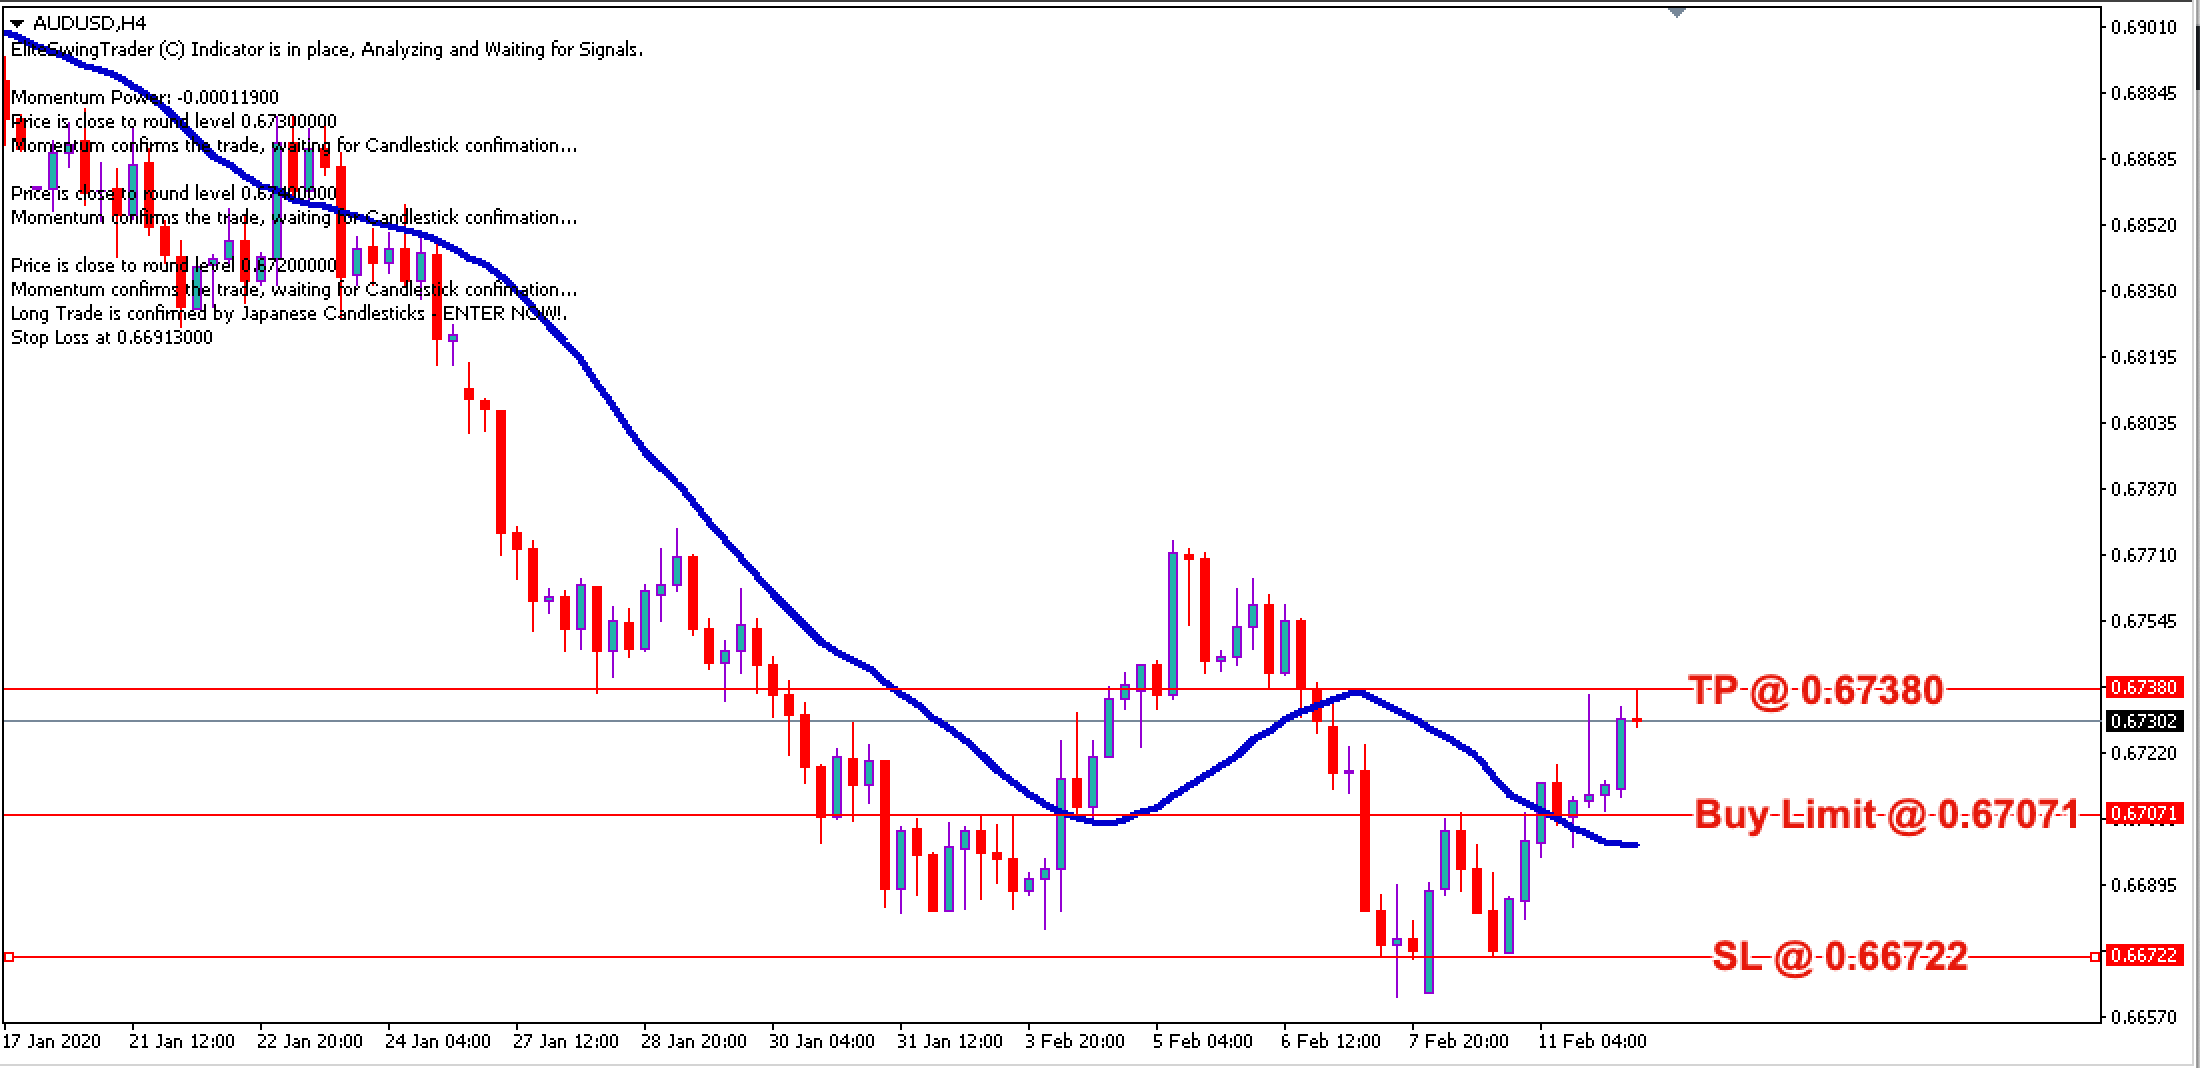 AUD/USD Daily Price Forecast – 12th Feb 2020